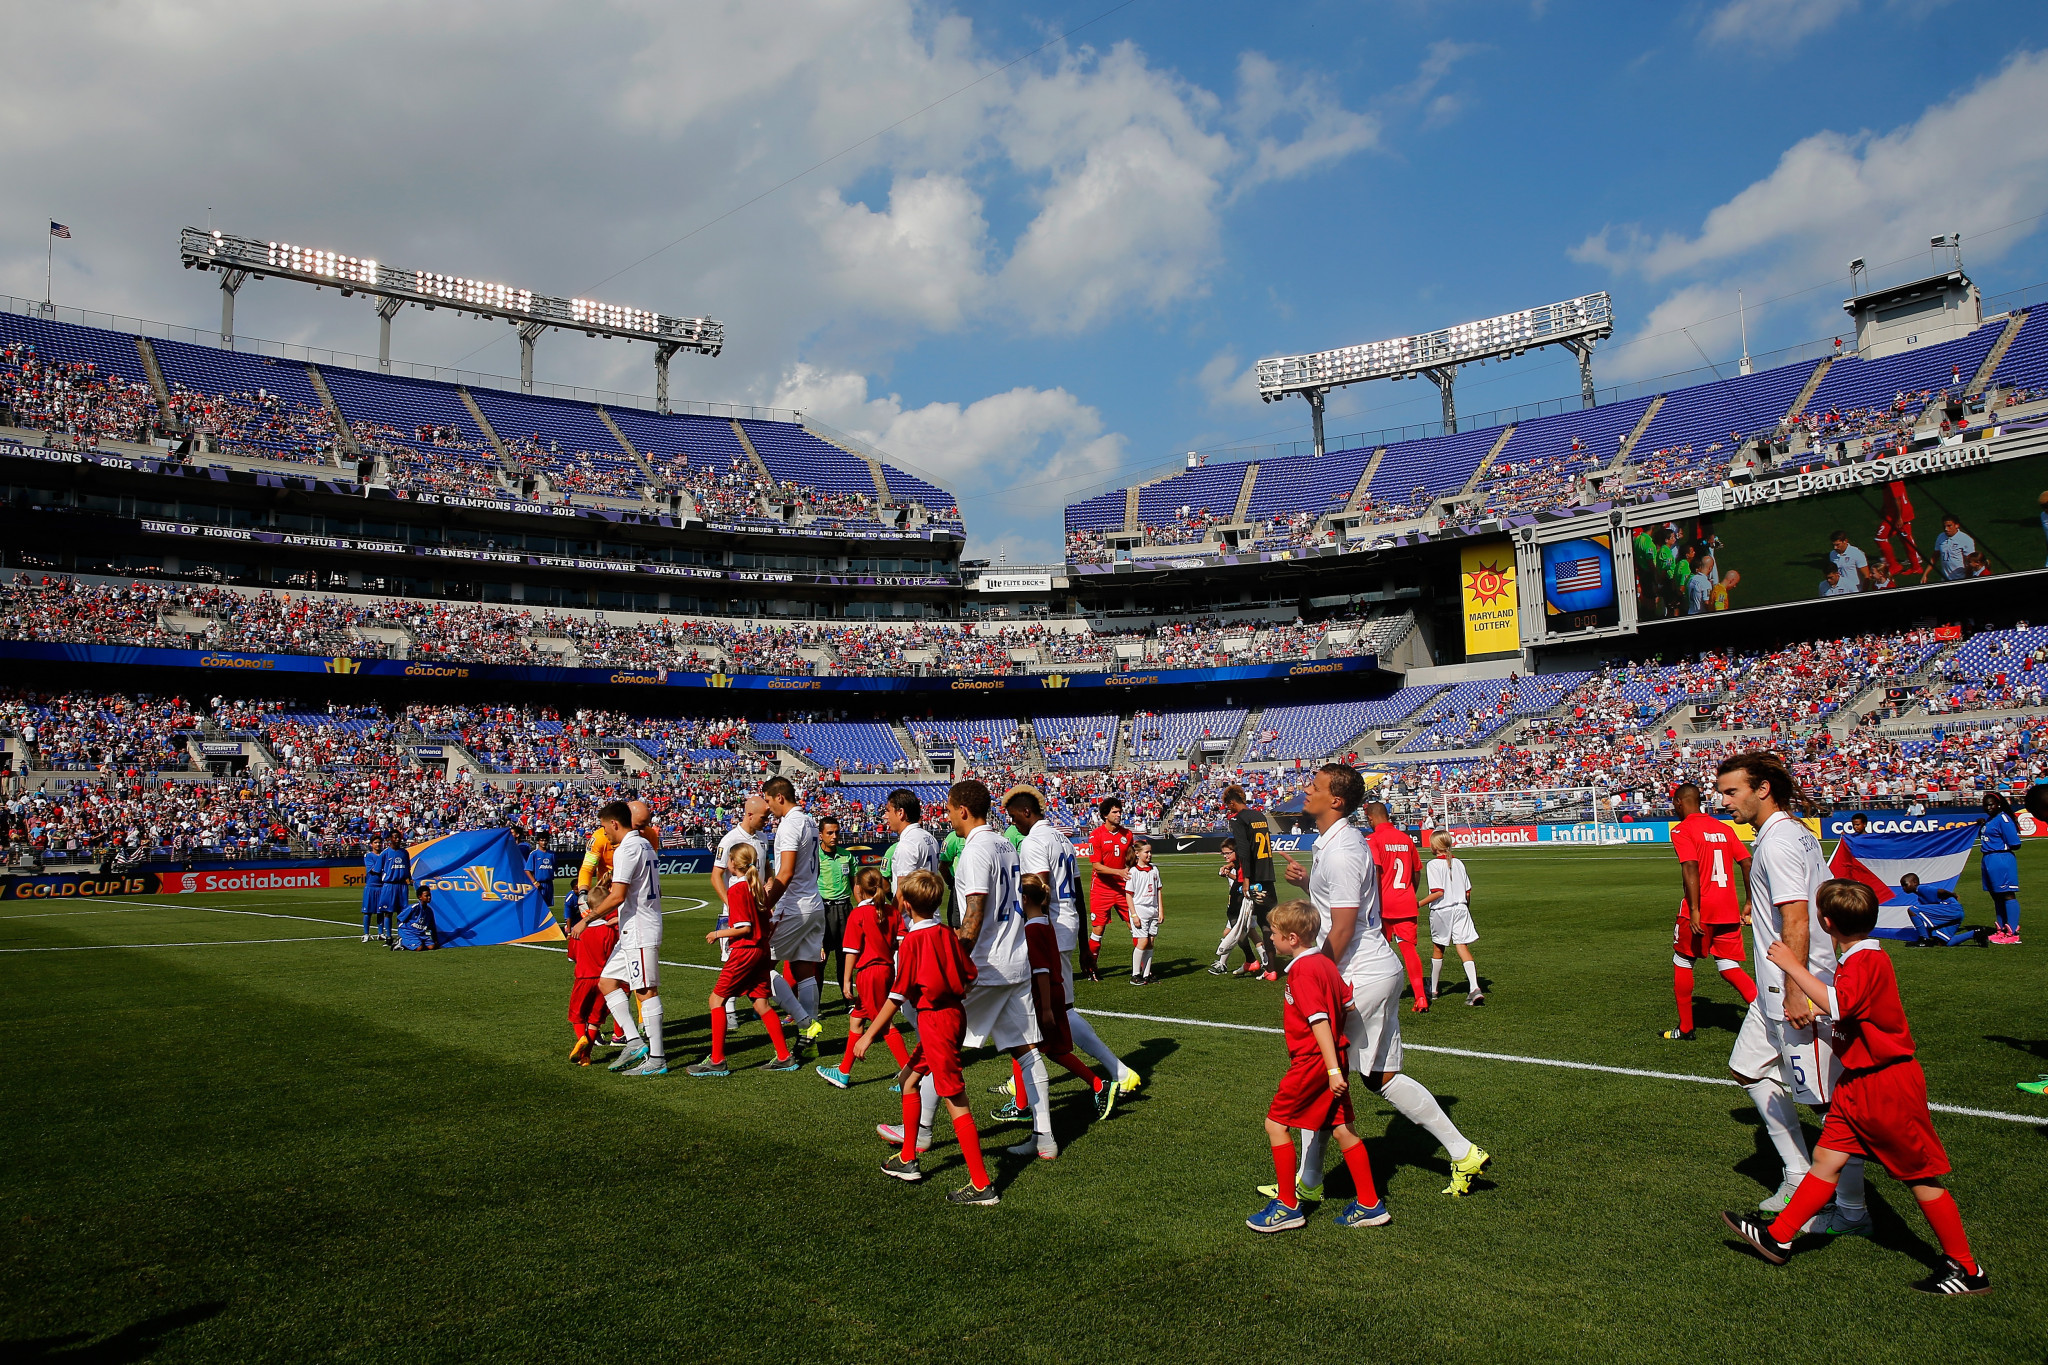 M&T Bank Stadium staged the 2015 CONCACAF Gold Cup quarter-final between the United States and Cuba ©Getty Images